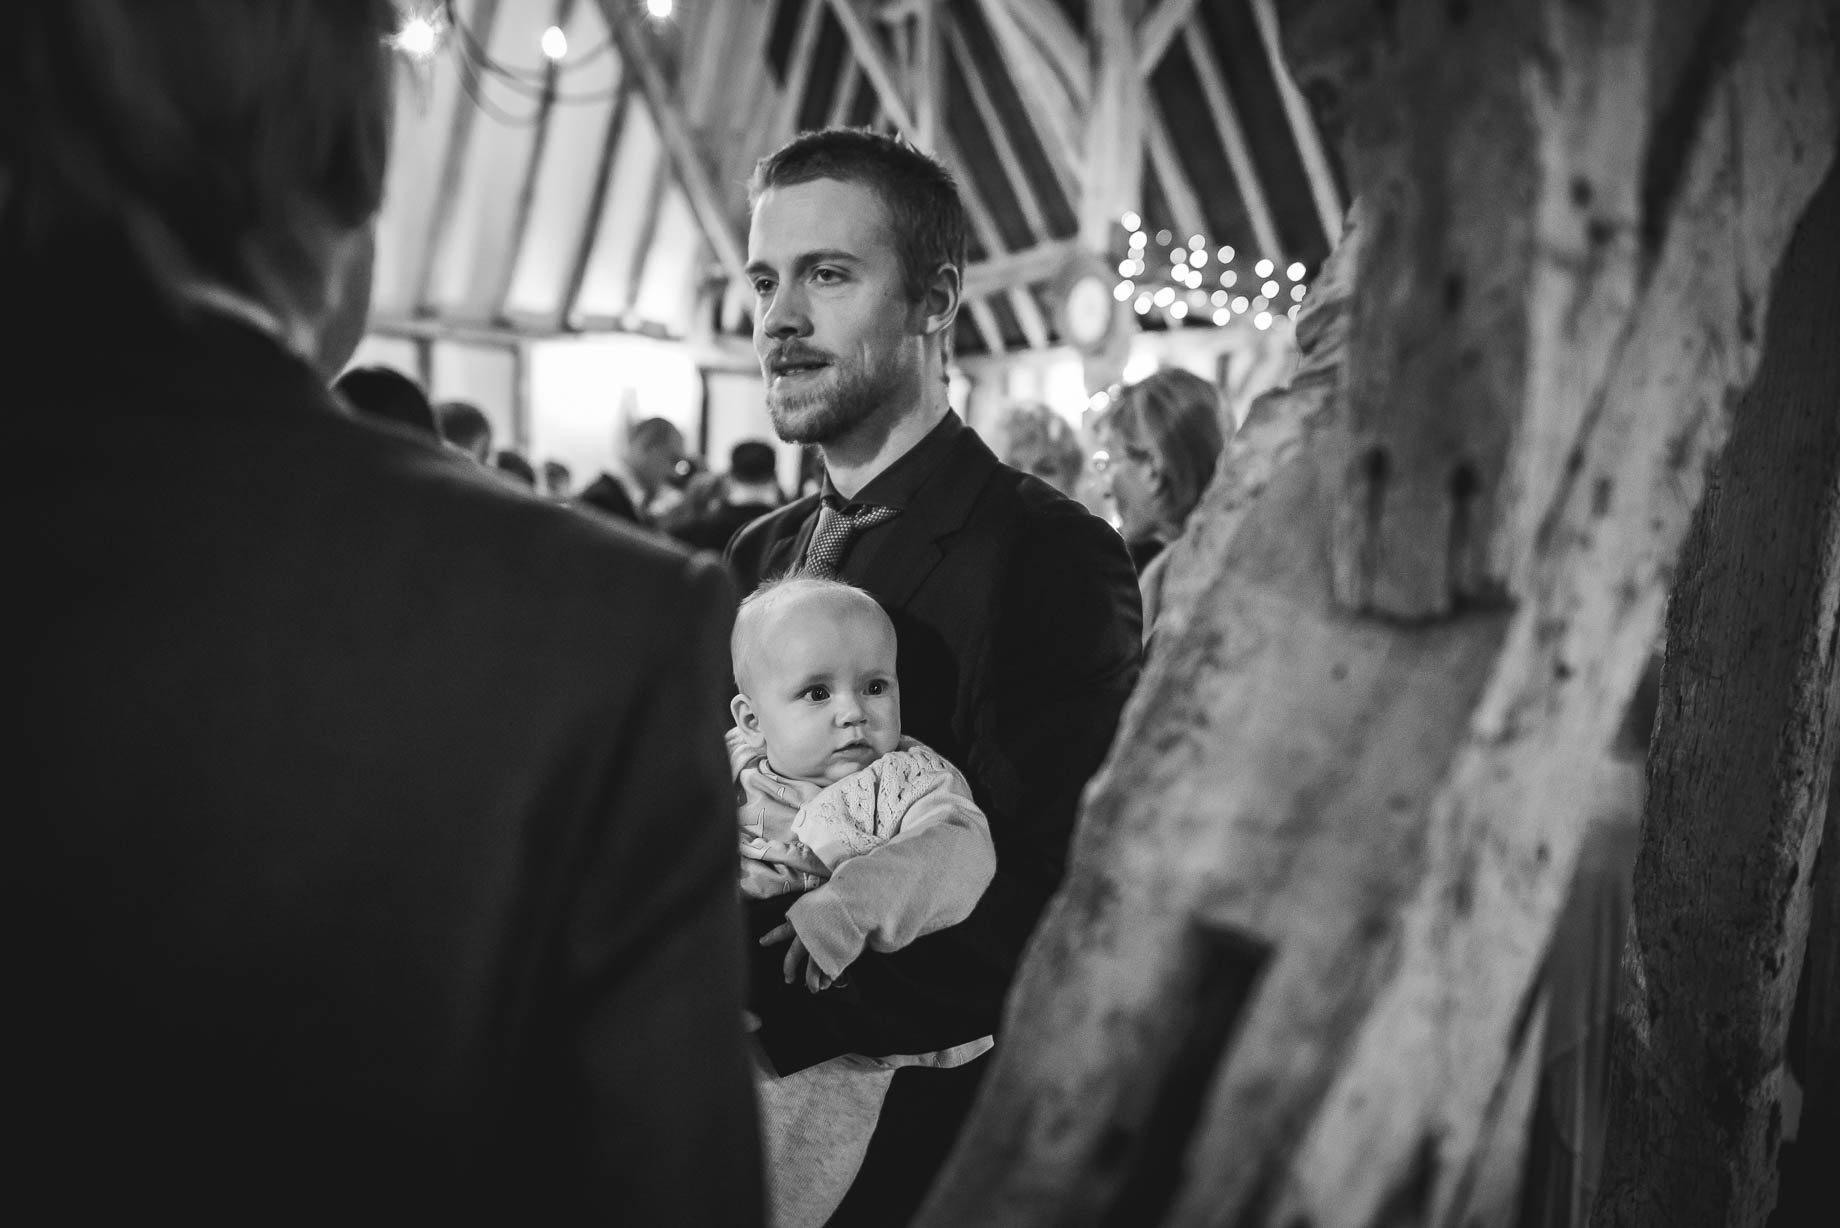 Clock Barn Wedding Photography - Eva and Ollie (95 of 170)